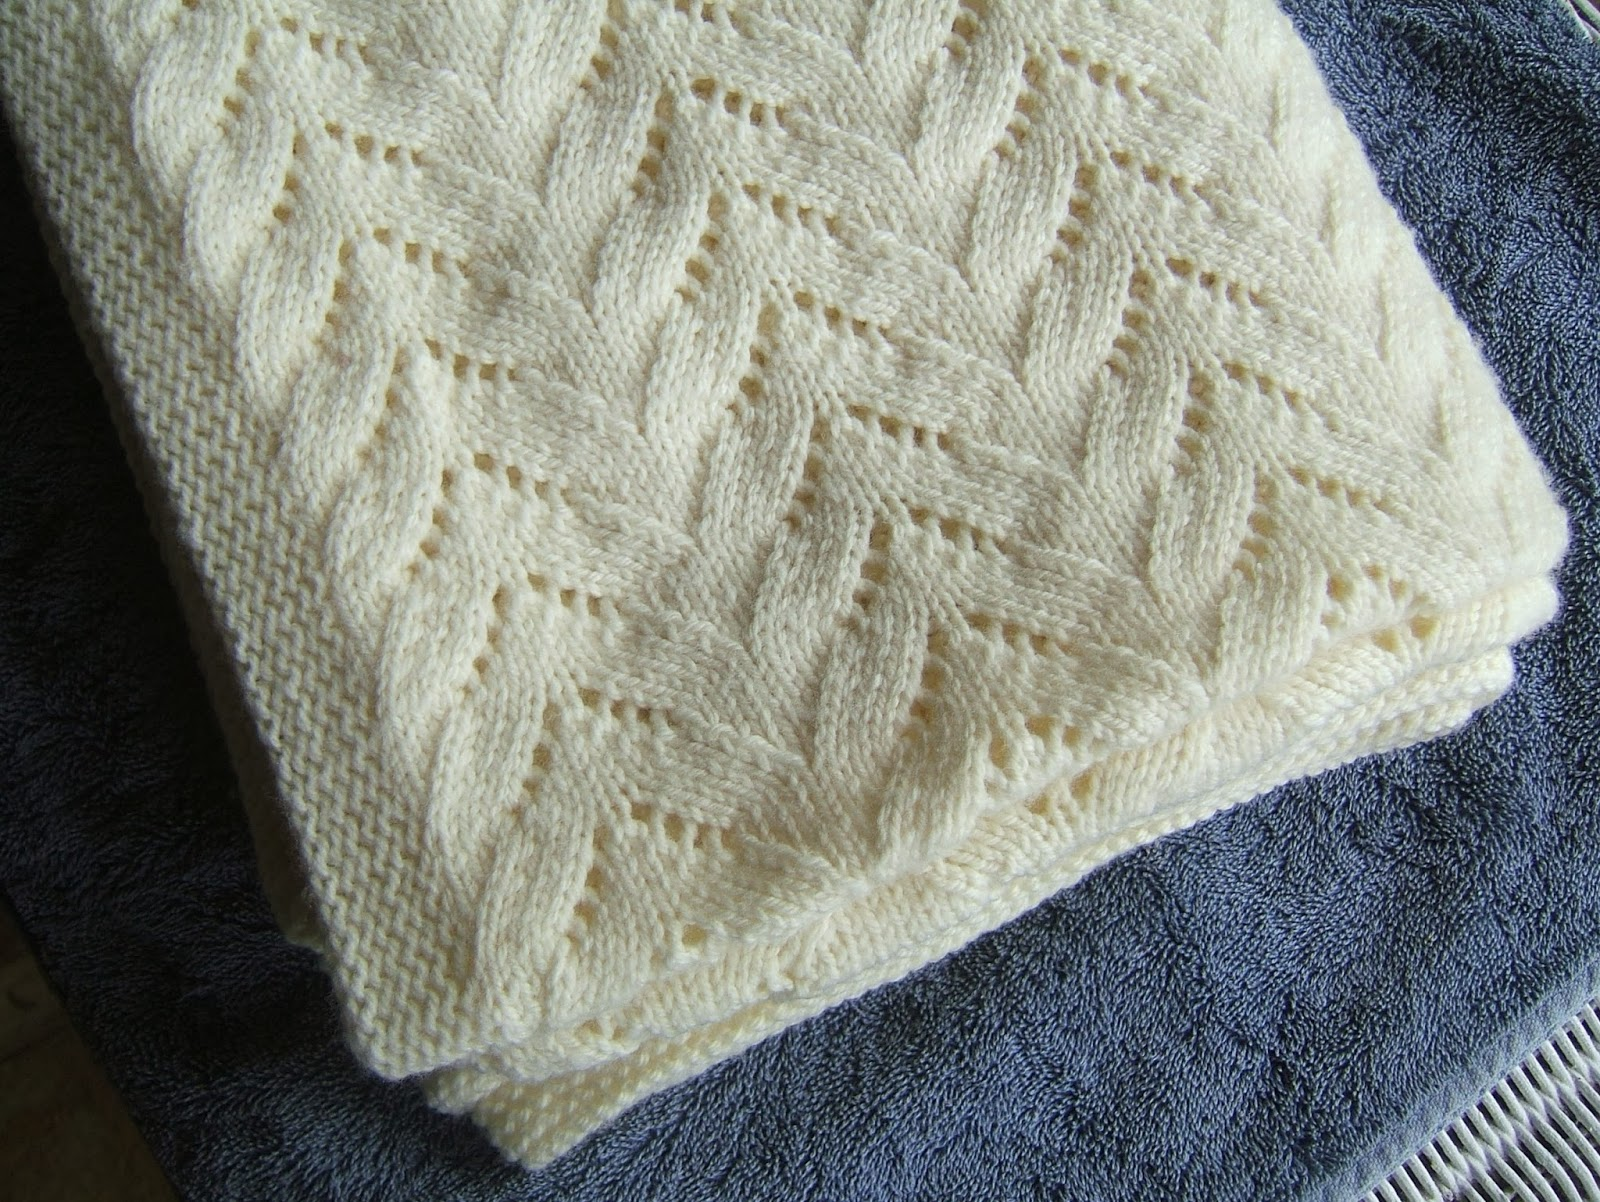 Knitting Threads : Aussie knitting threads lace throw rug